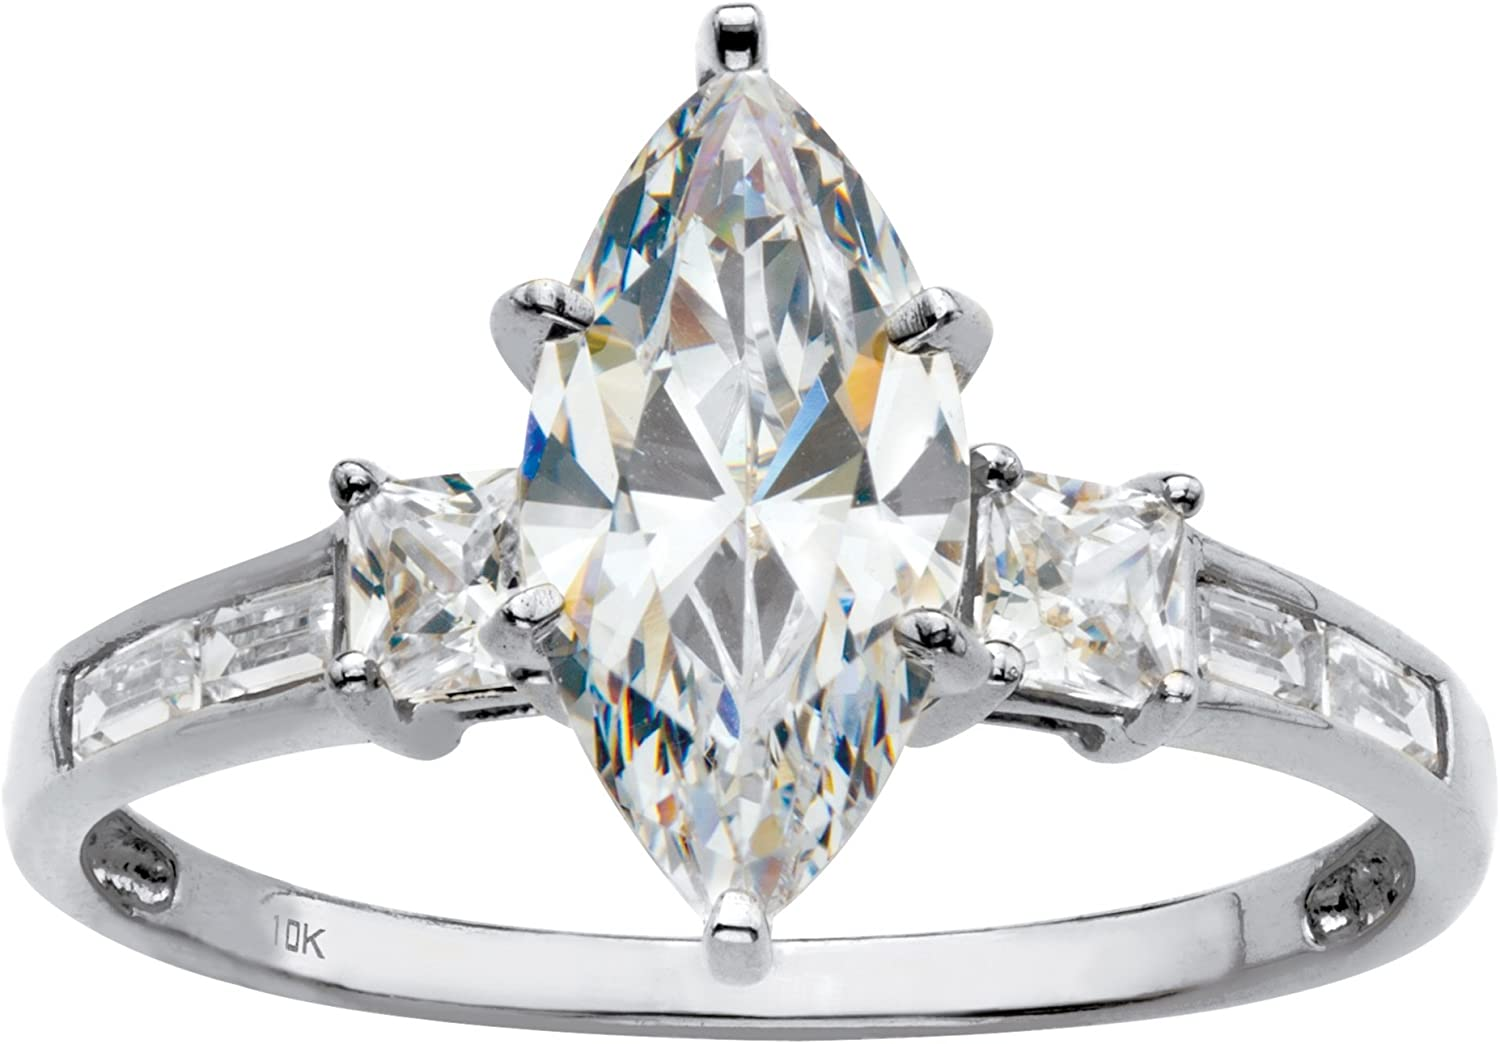 10K White Gold Marquise Cut Cubic Zirconia Engagement Ring